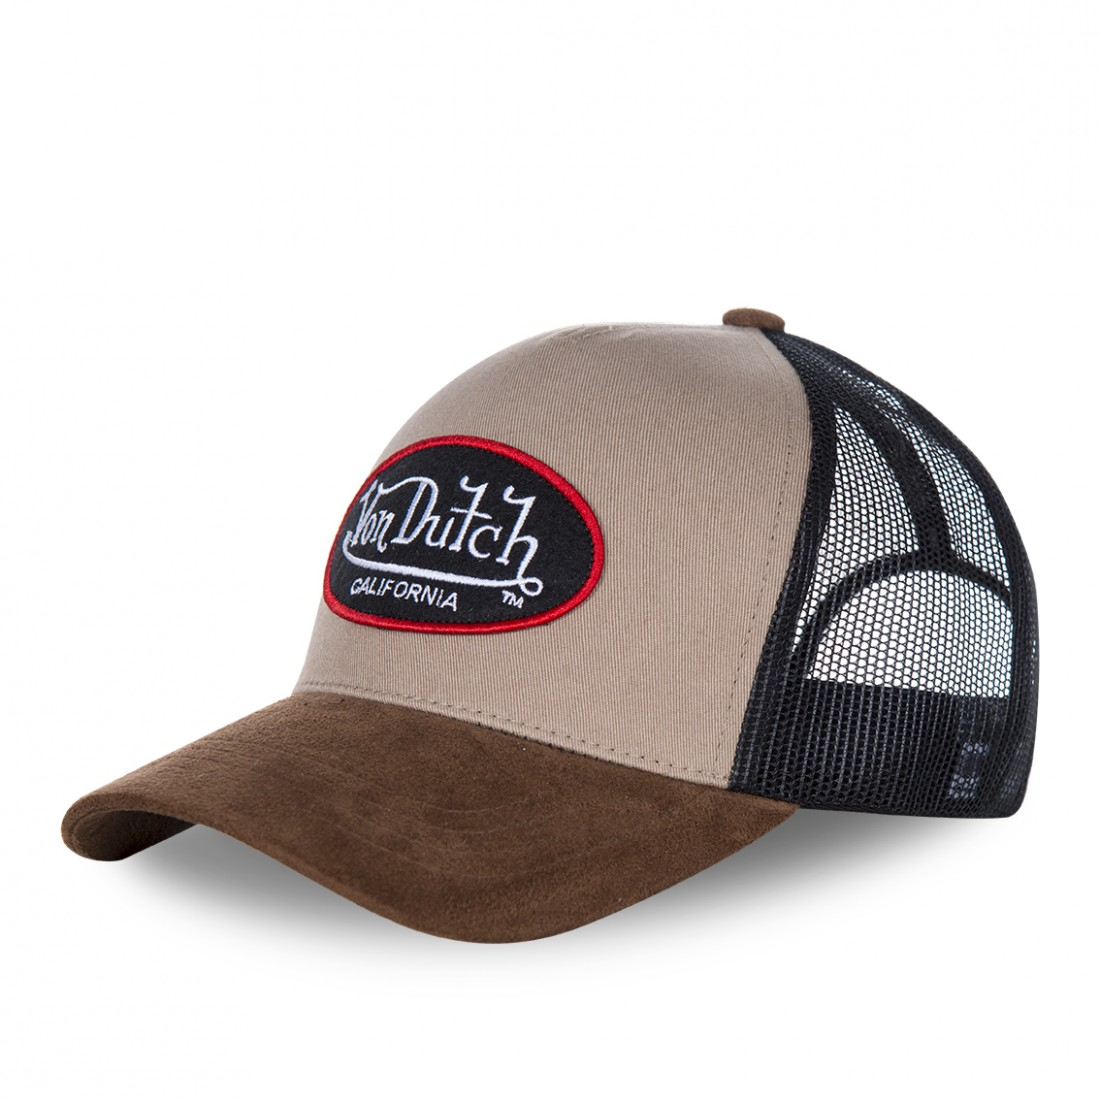 casquette baseball homme von dutch suede beige. Black Bedroom Furniture Sets. Home Design Ideas